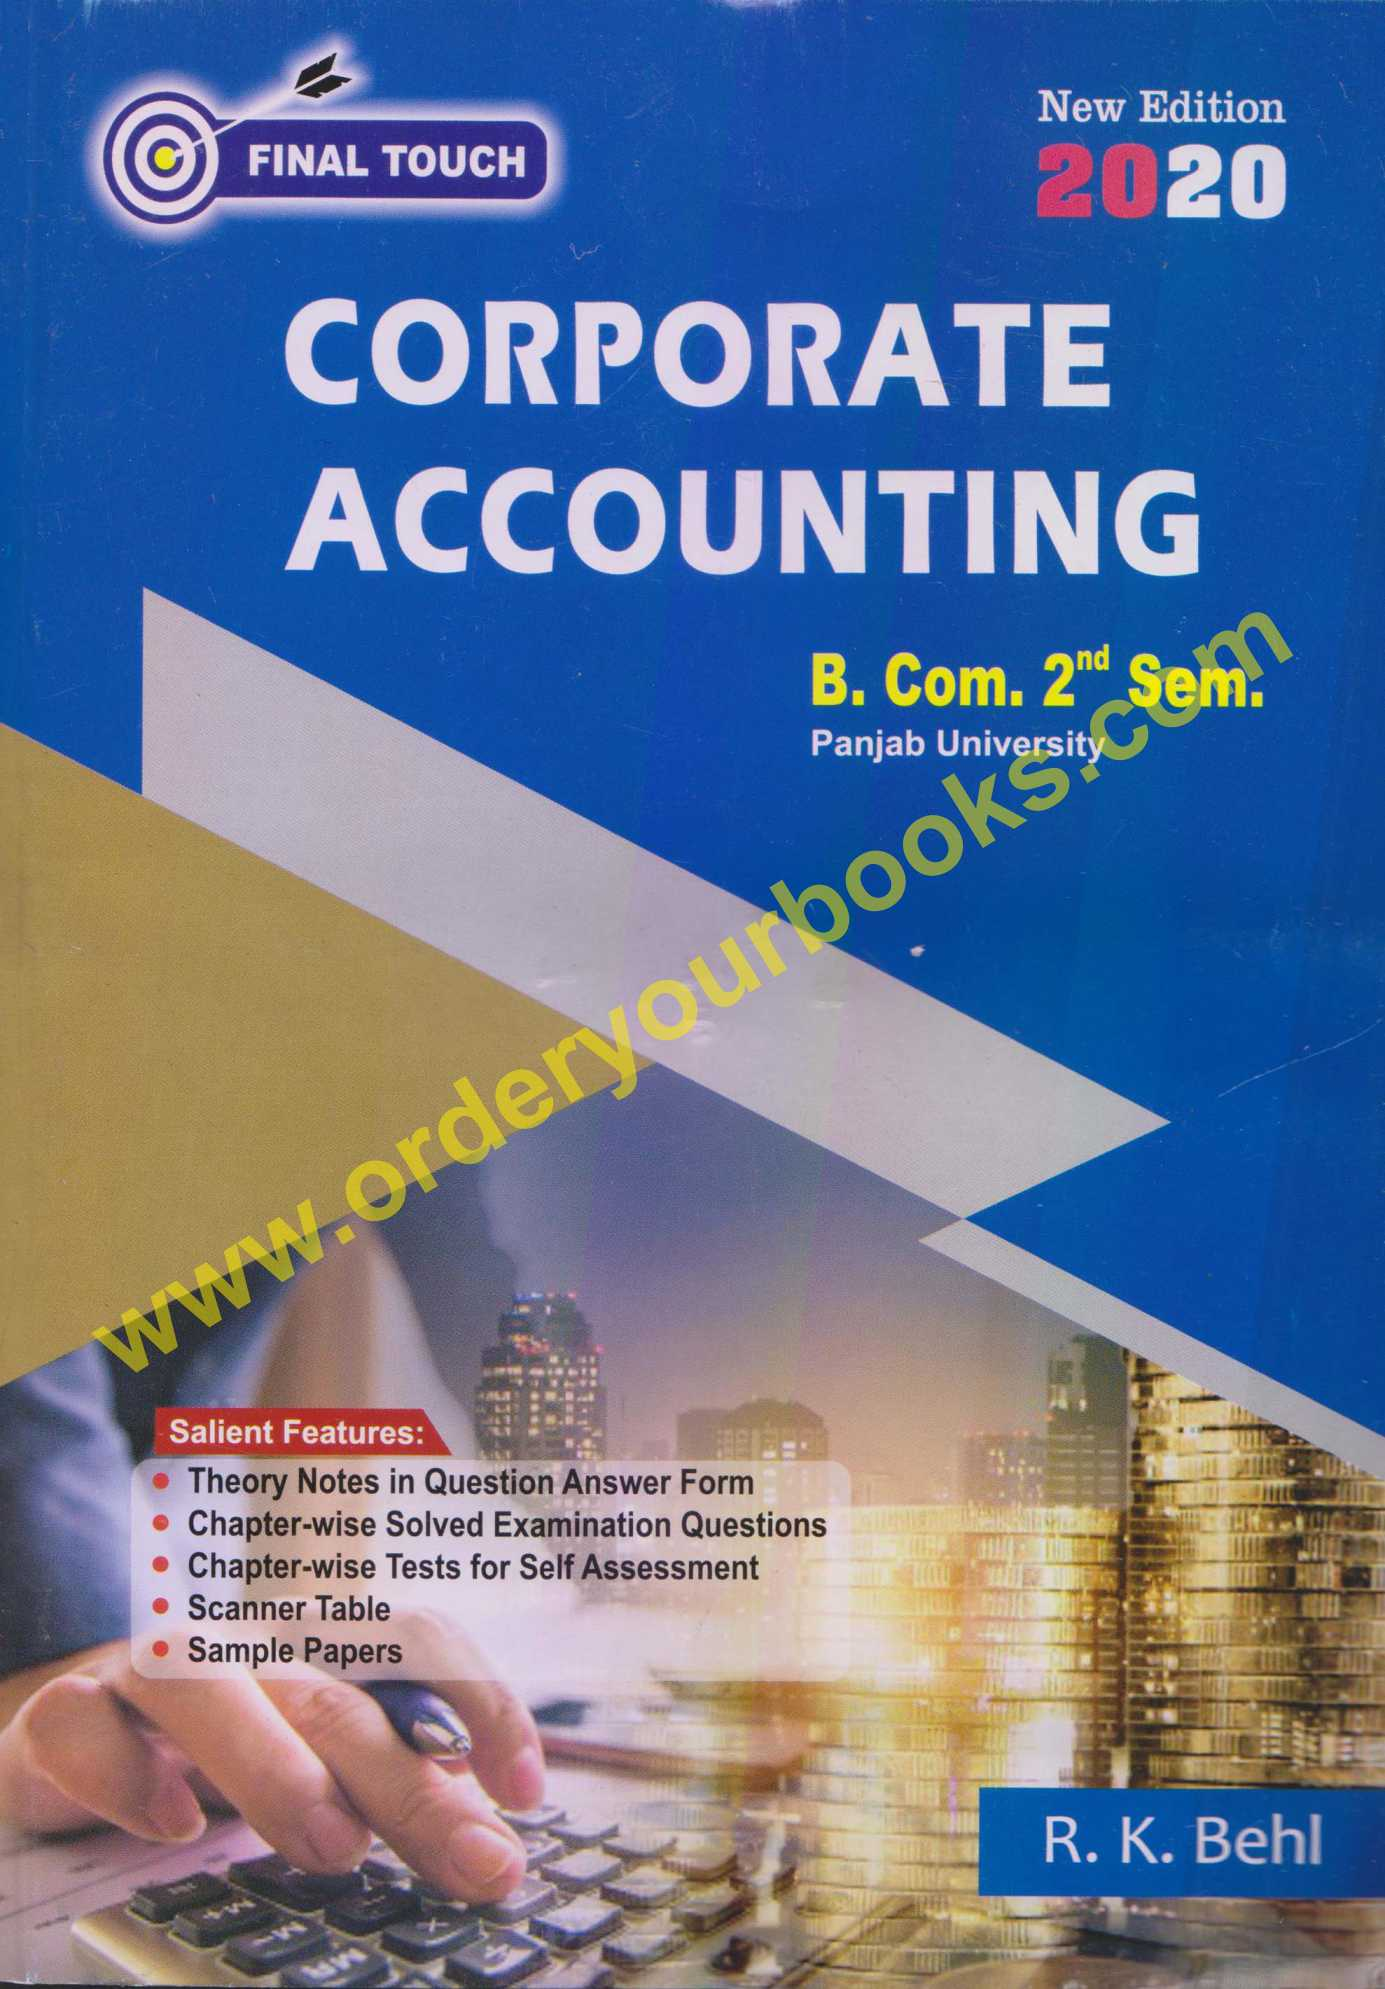 Final Touch Corporate Accounting B.com Sem II by R.K Bhel Edition 2020 for Panjab University